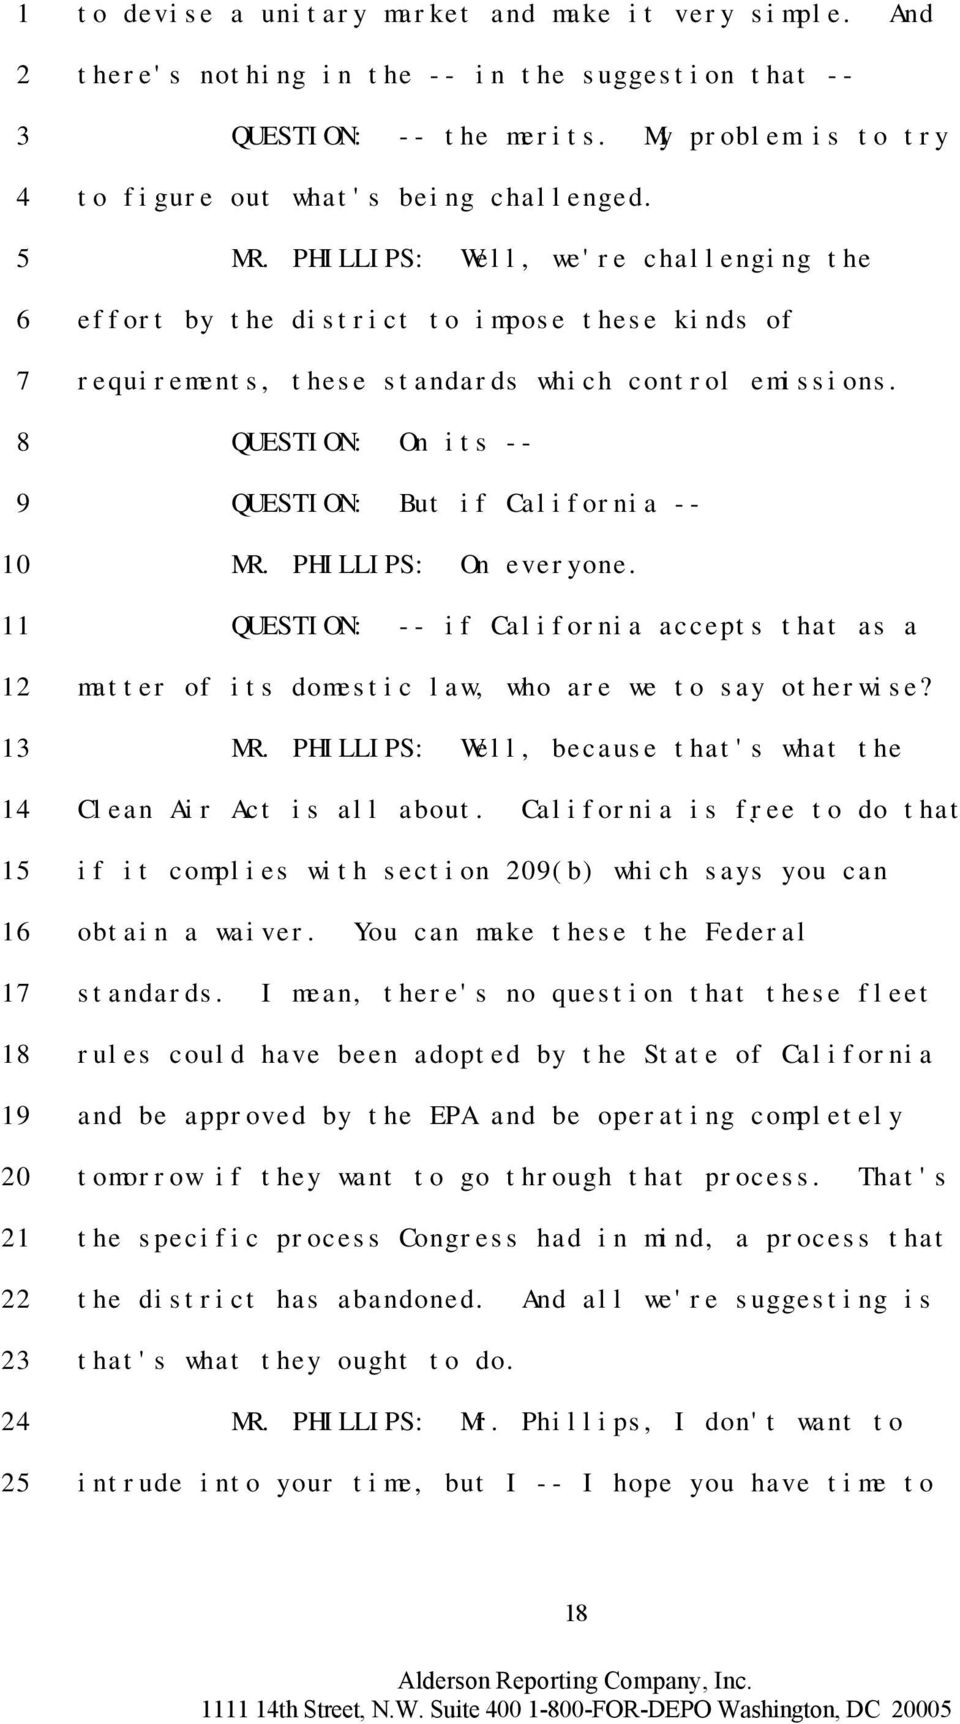 PHILLIPS: On everyone. QUESTION: -- if California accepts that as a matter of its domestic law, who are we to say otherwise? MR. PHILLIPS: Well, because that's what the Clean Air Act is all about.